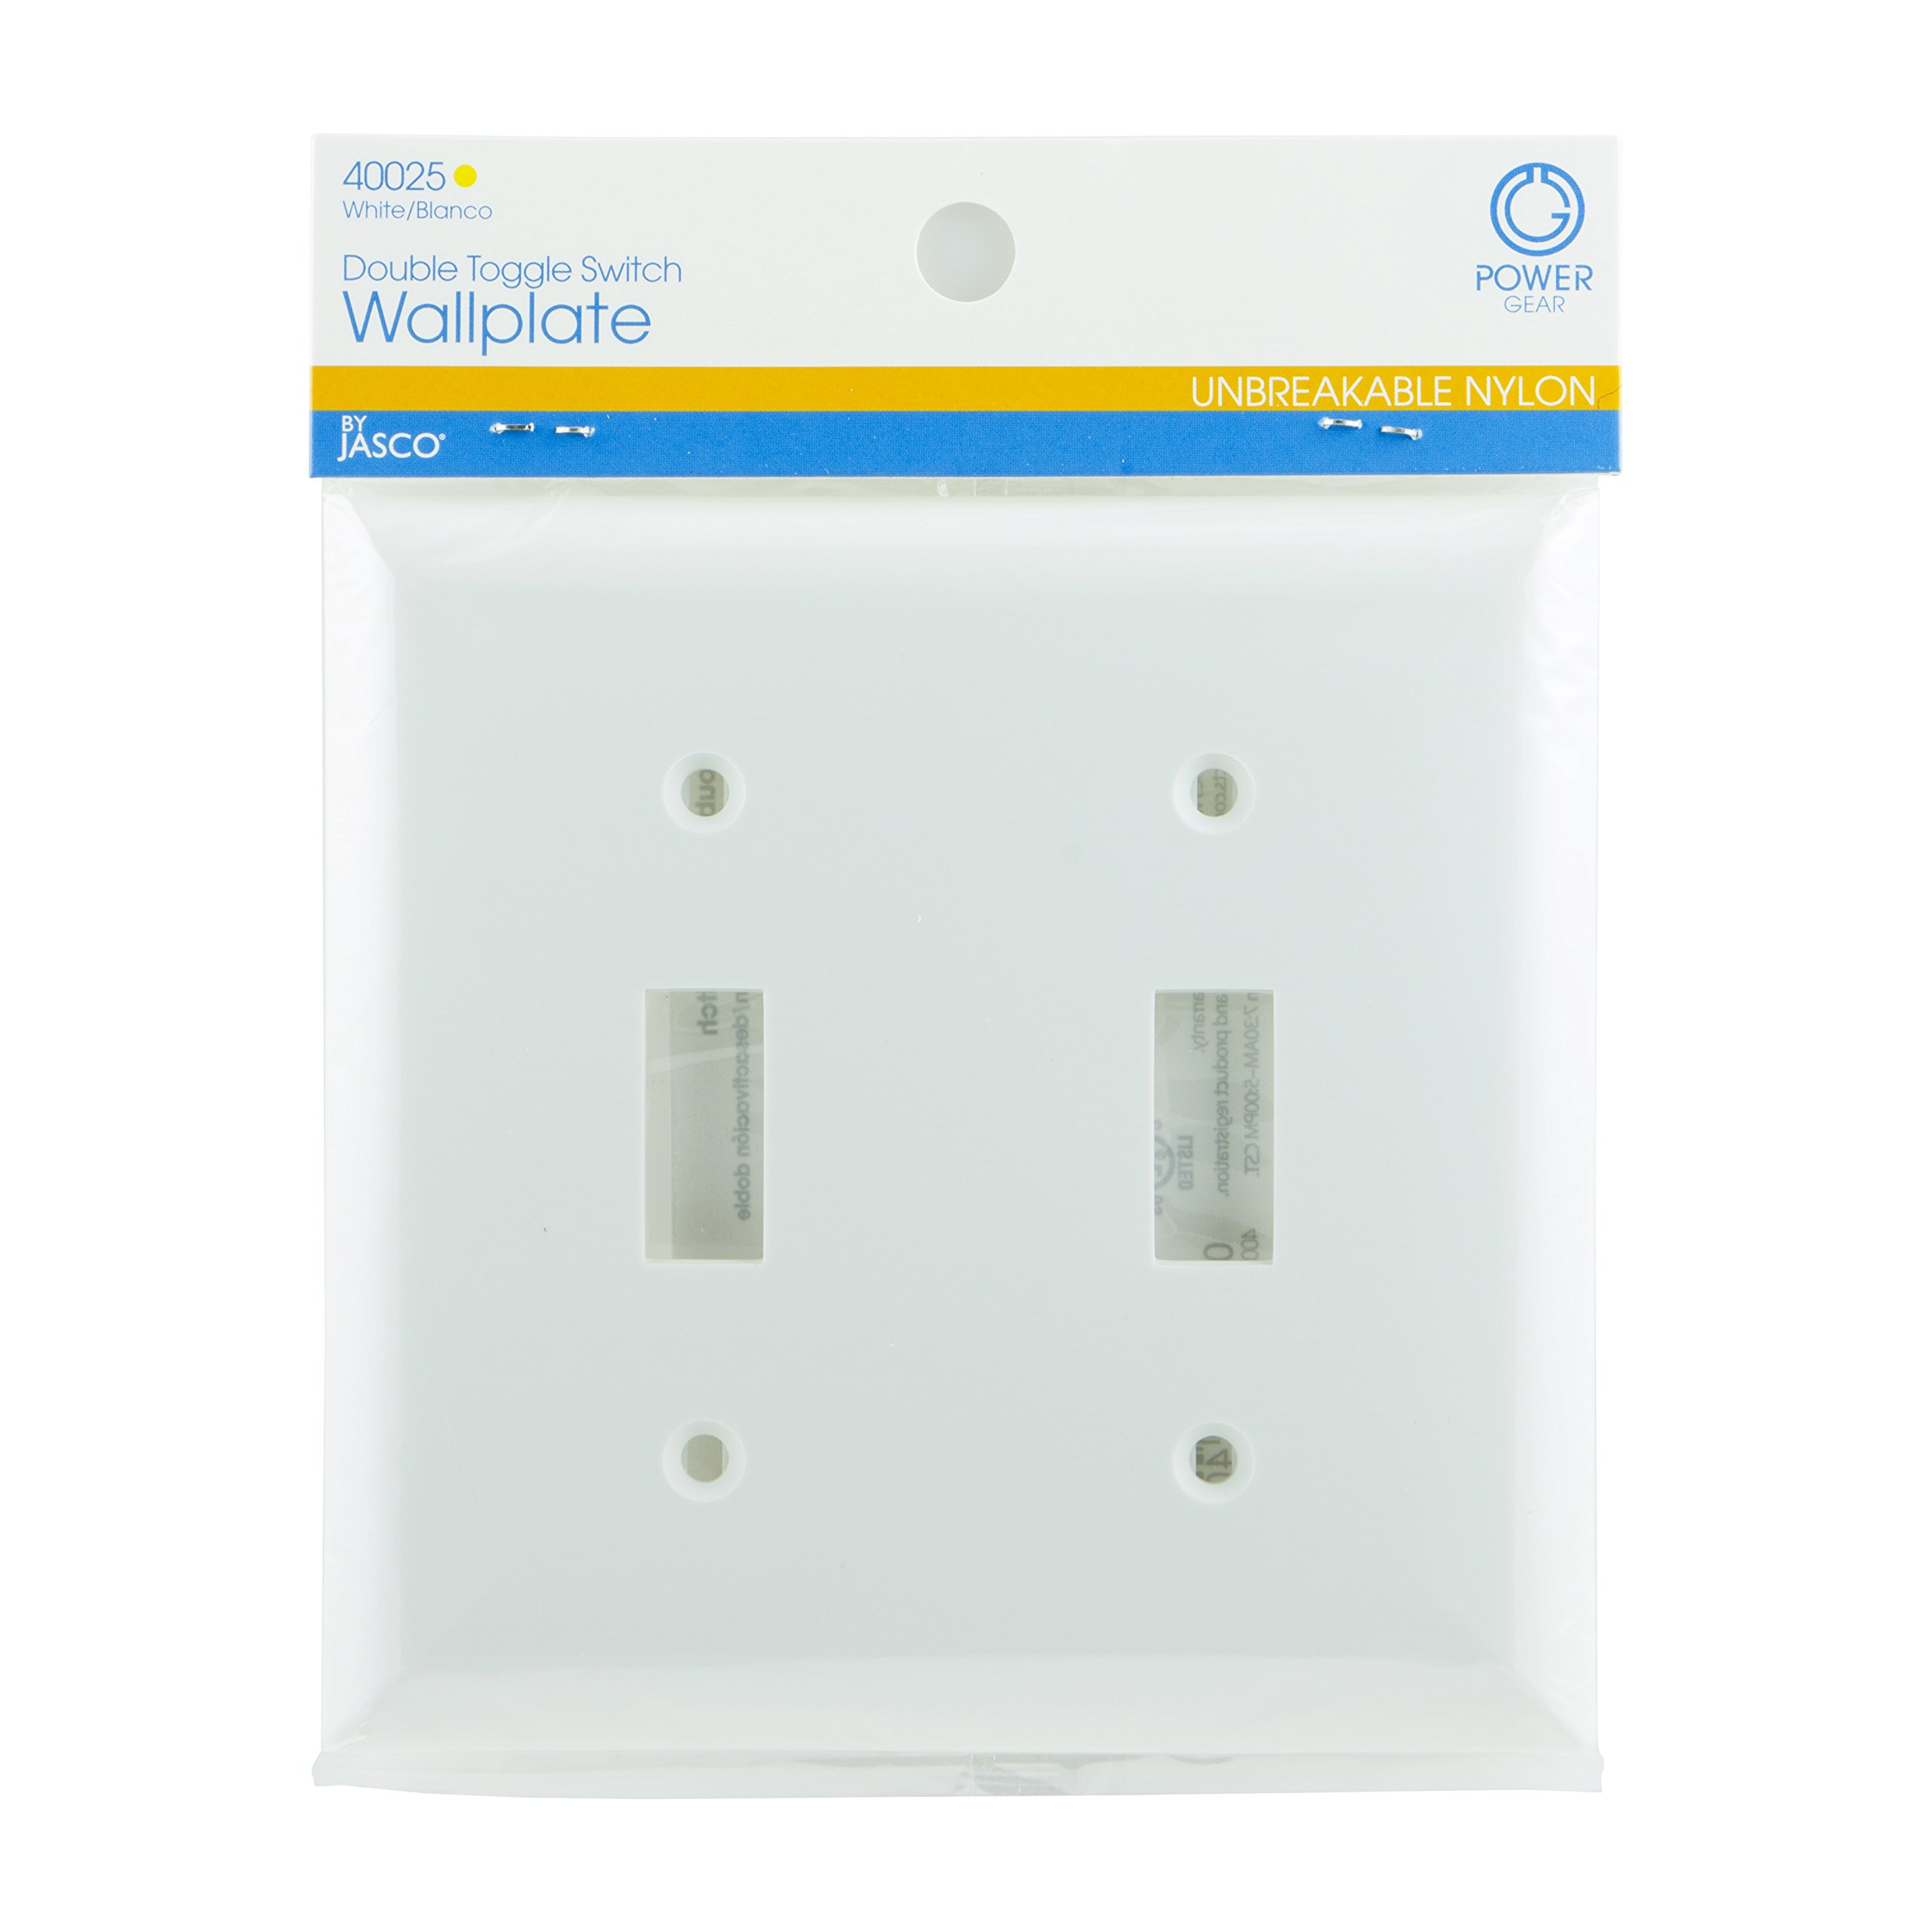 Power Gear Double Toggle Switch Wallplate, White, Unbreakable Nylon, Screws Included, UL Listed, 40025 by Power Gear (Image #2)